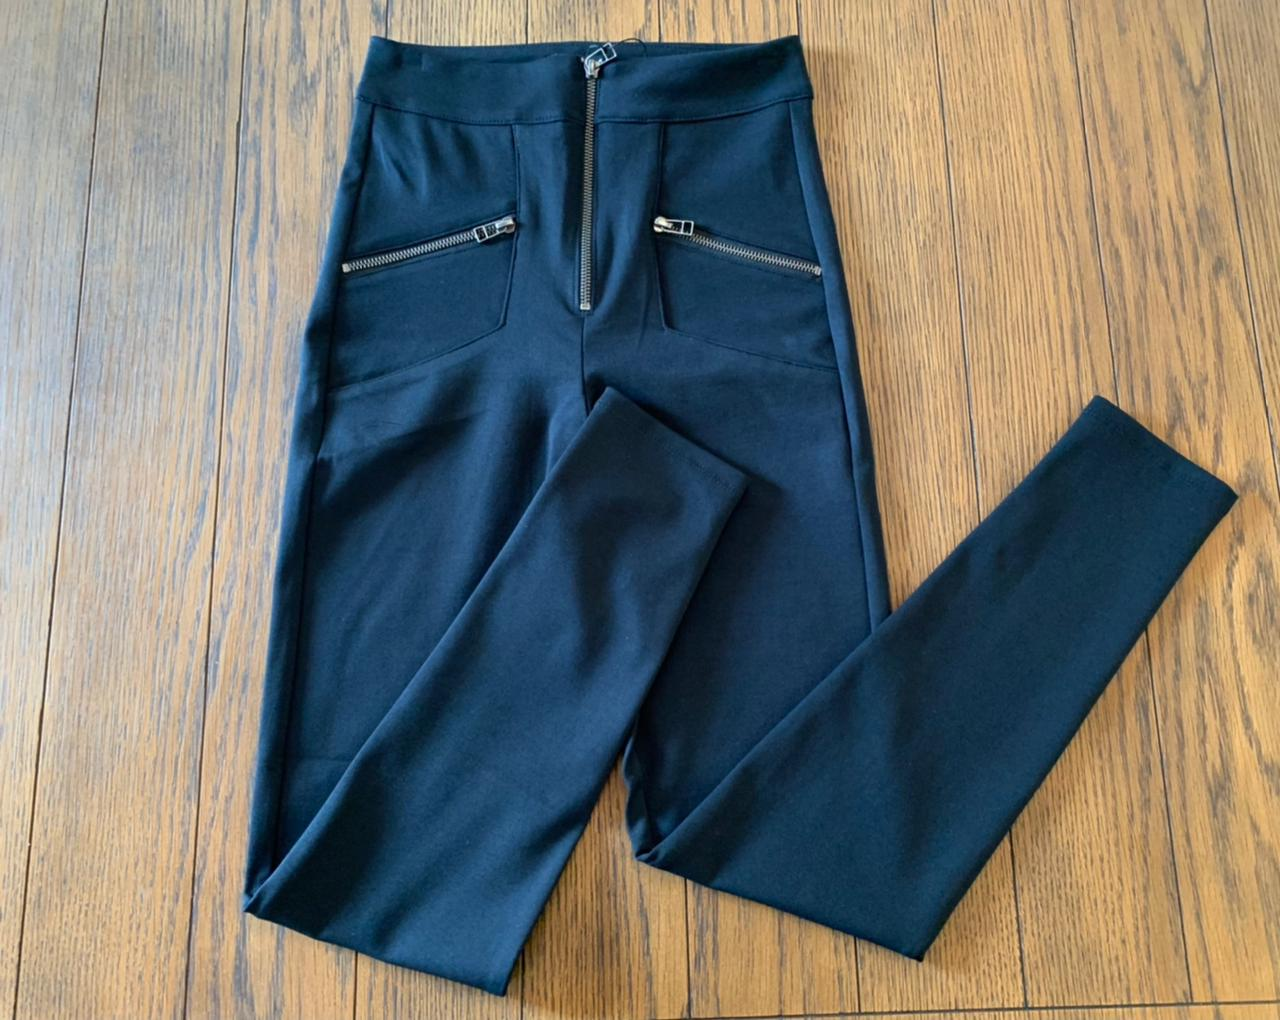 Legging Justo Black